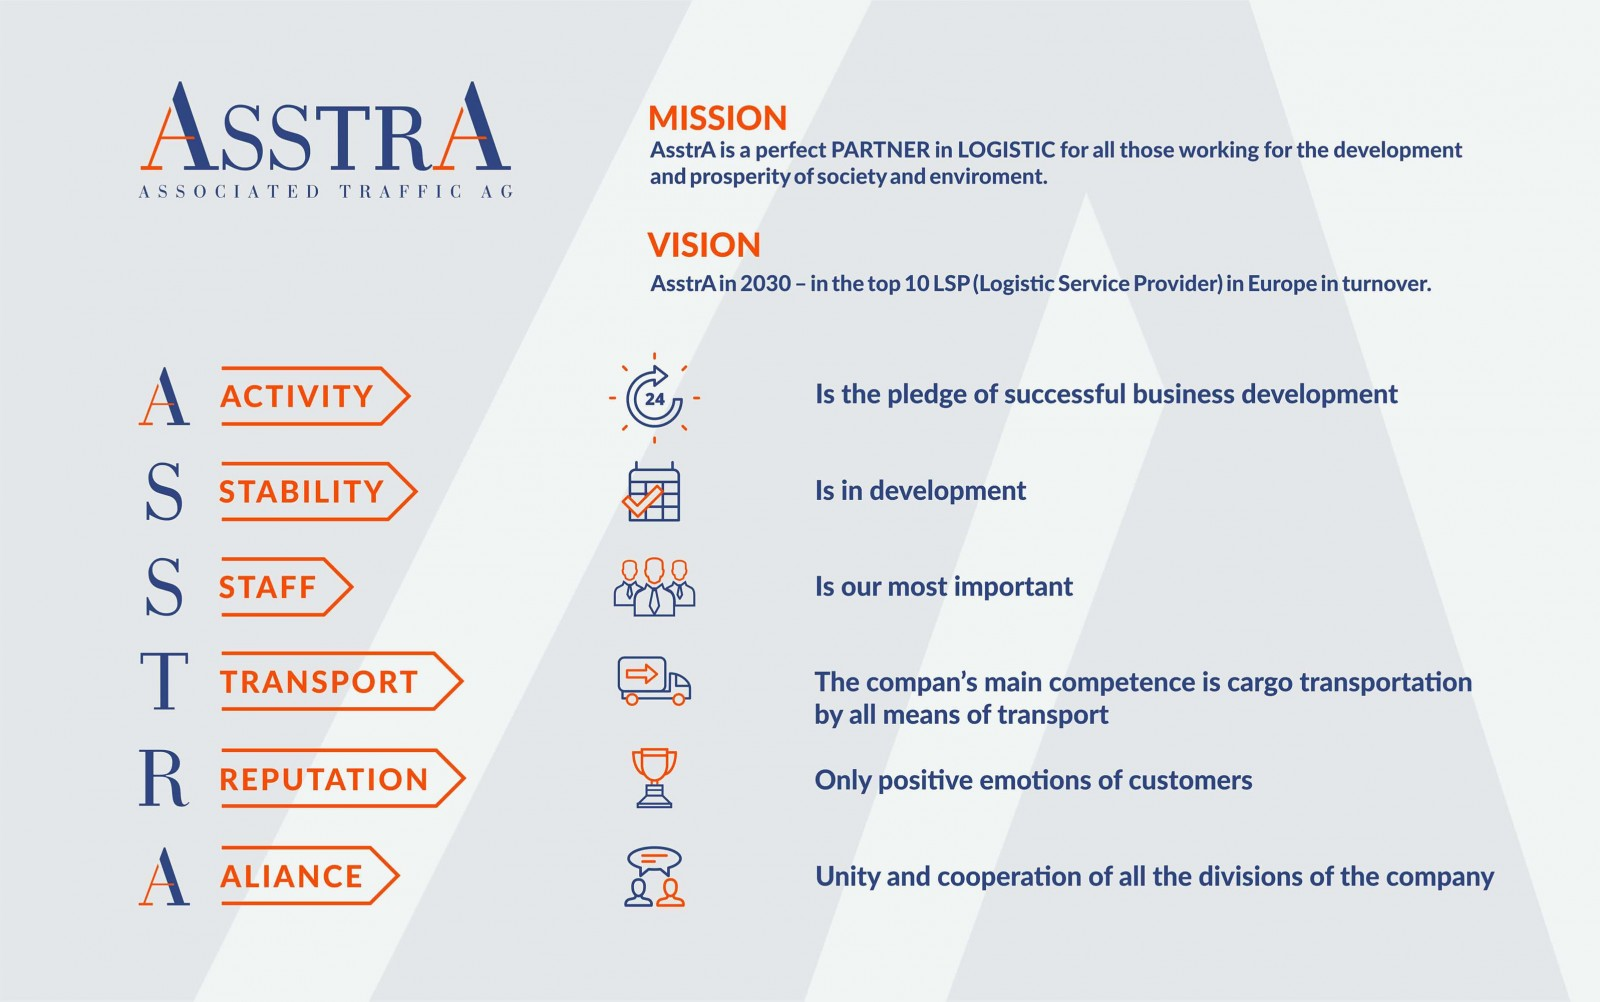 AsstrA: mission and vision